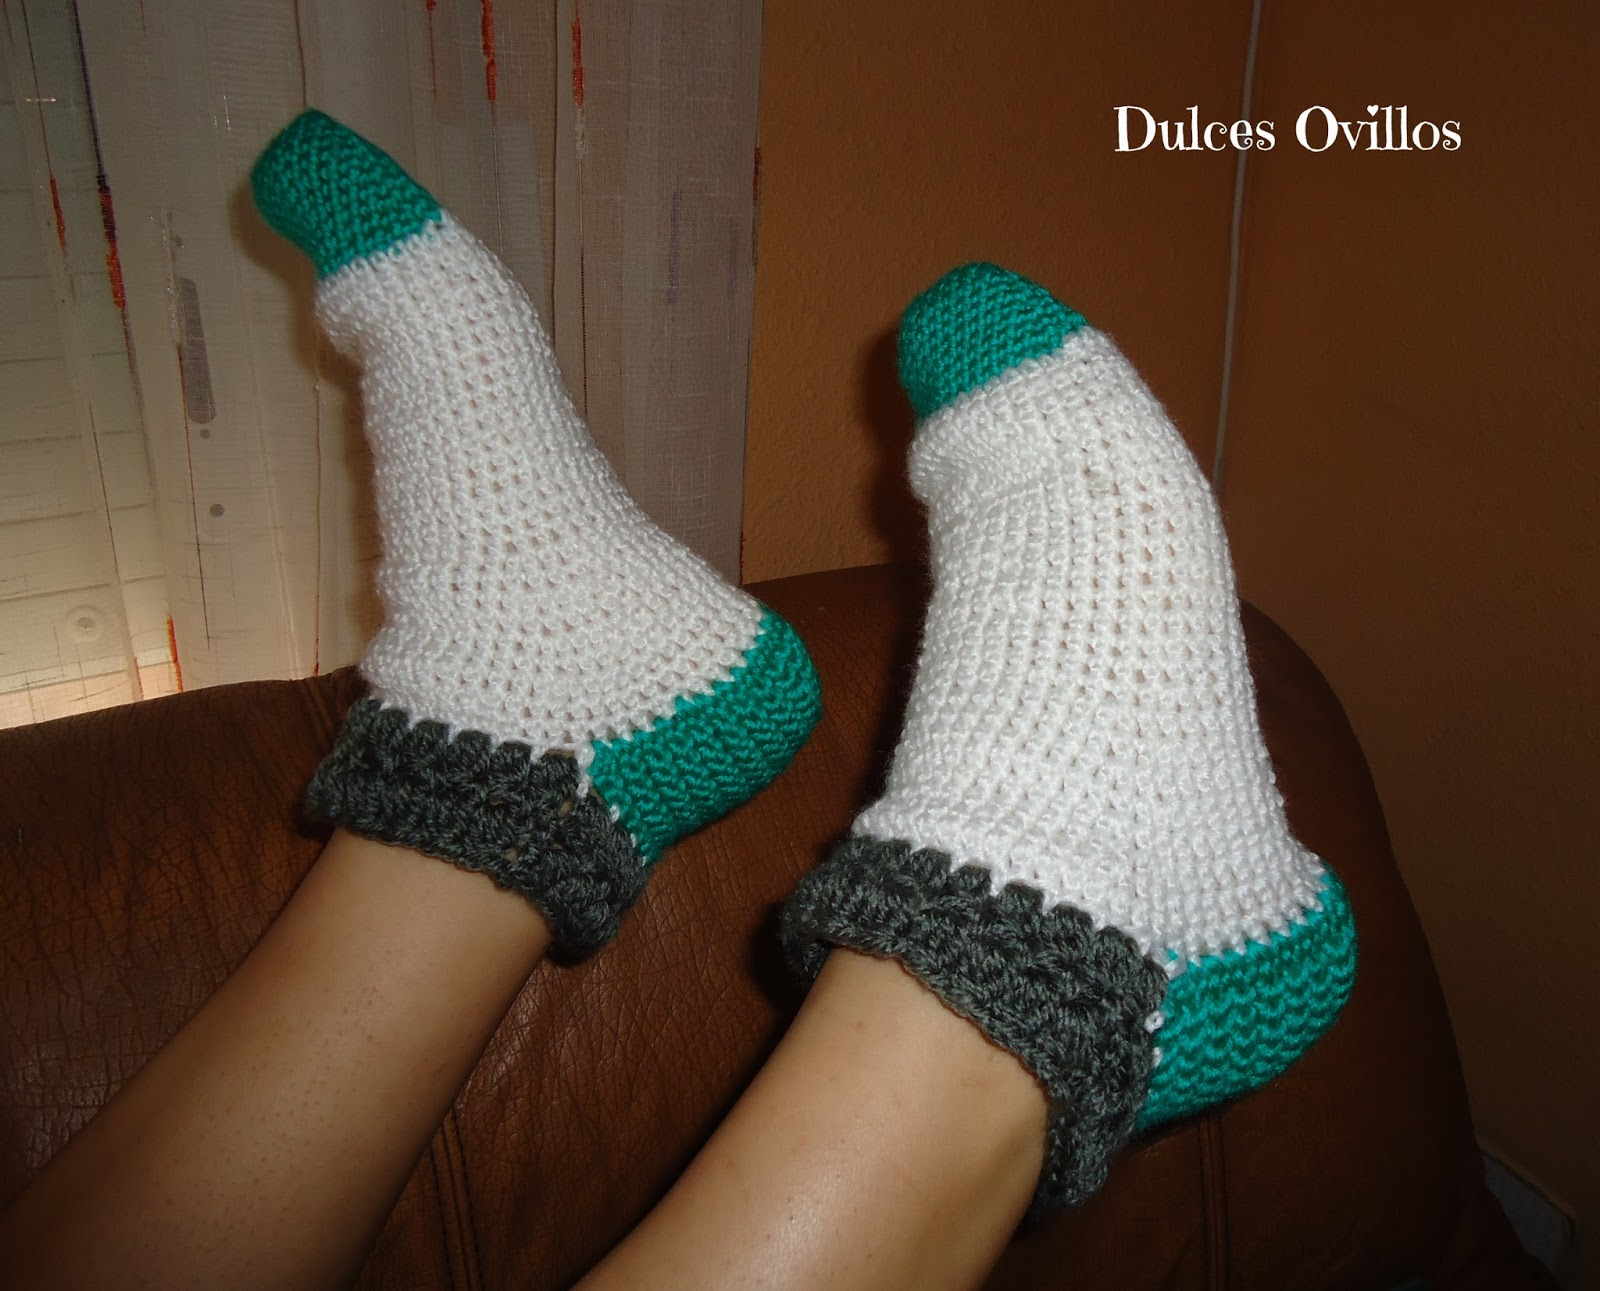 Calcetines a ganchillo - Crochet socks - Handbox Craft Lovers ...